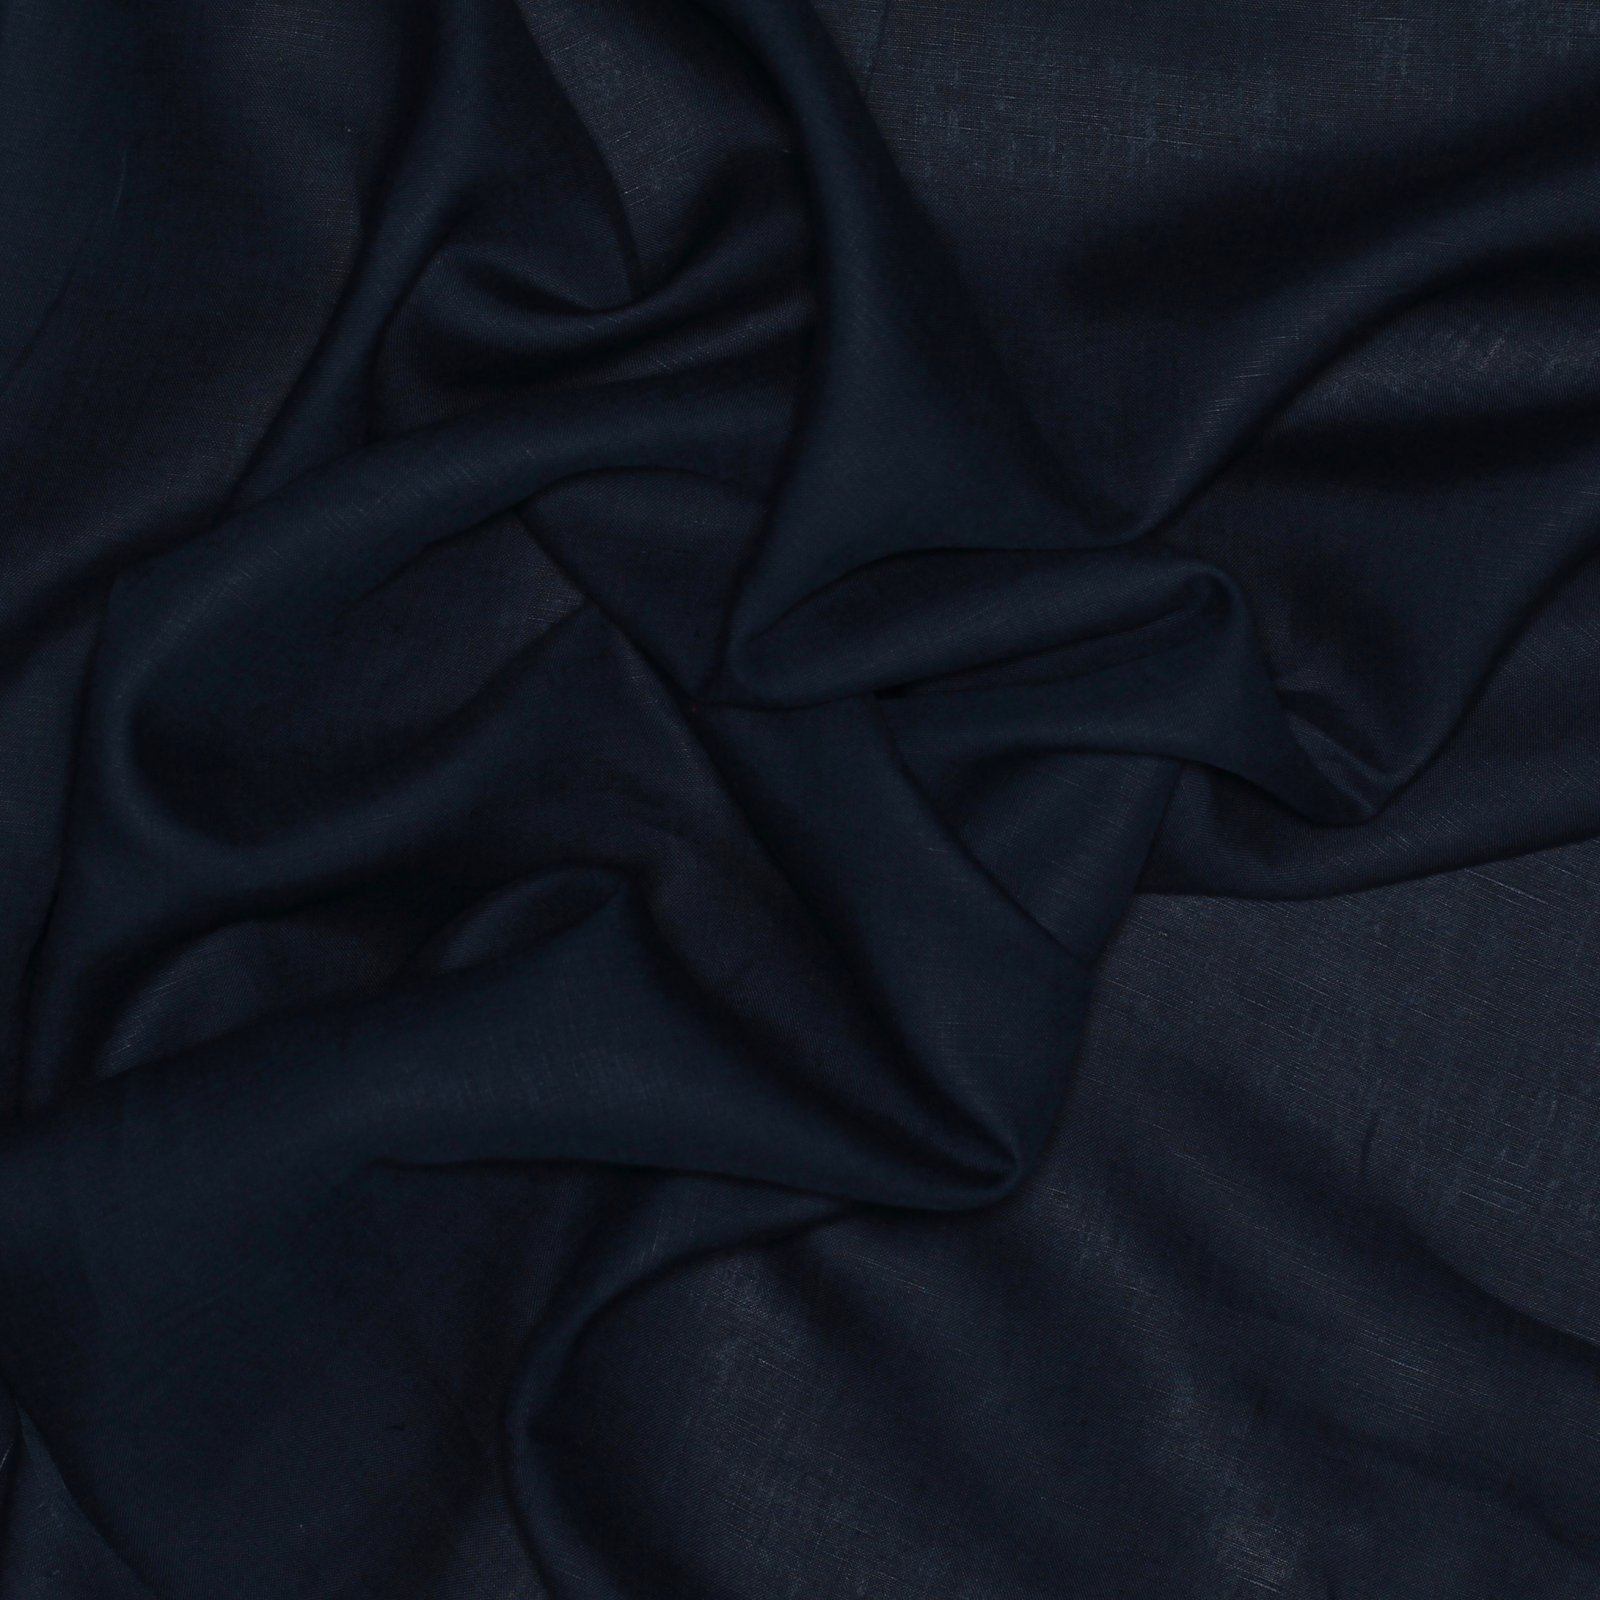 Italian Linen Midnight Navy